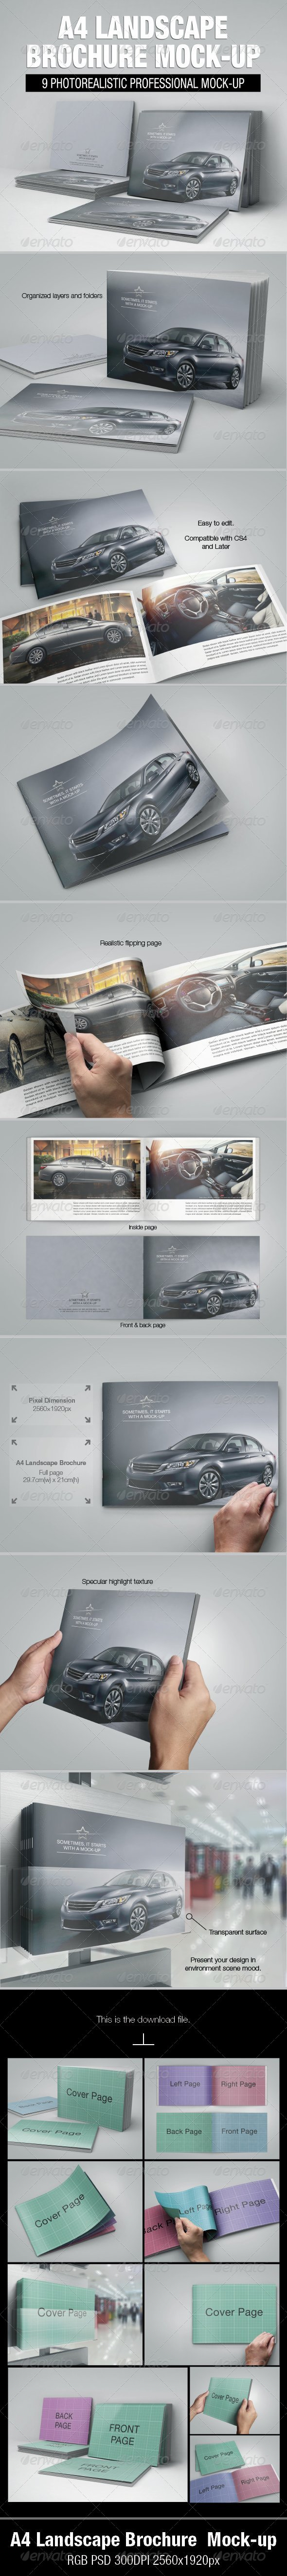 A4 Landscape Brochure Mock-up - Brochures Print